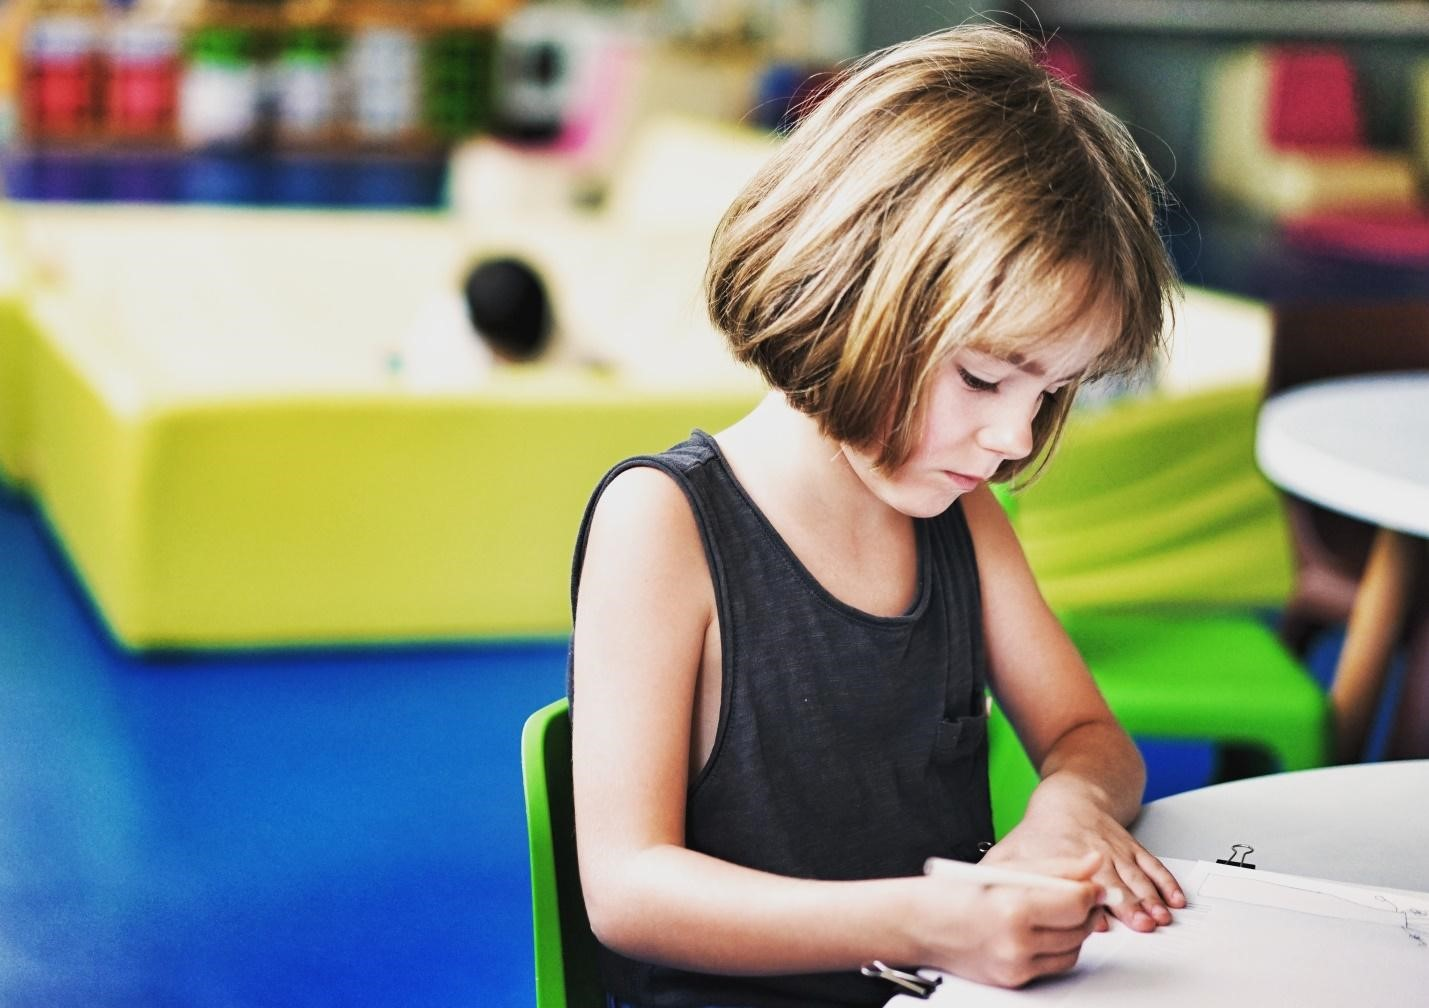 6 Easy Ways To Prepare Your Toddler For Preschool